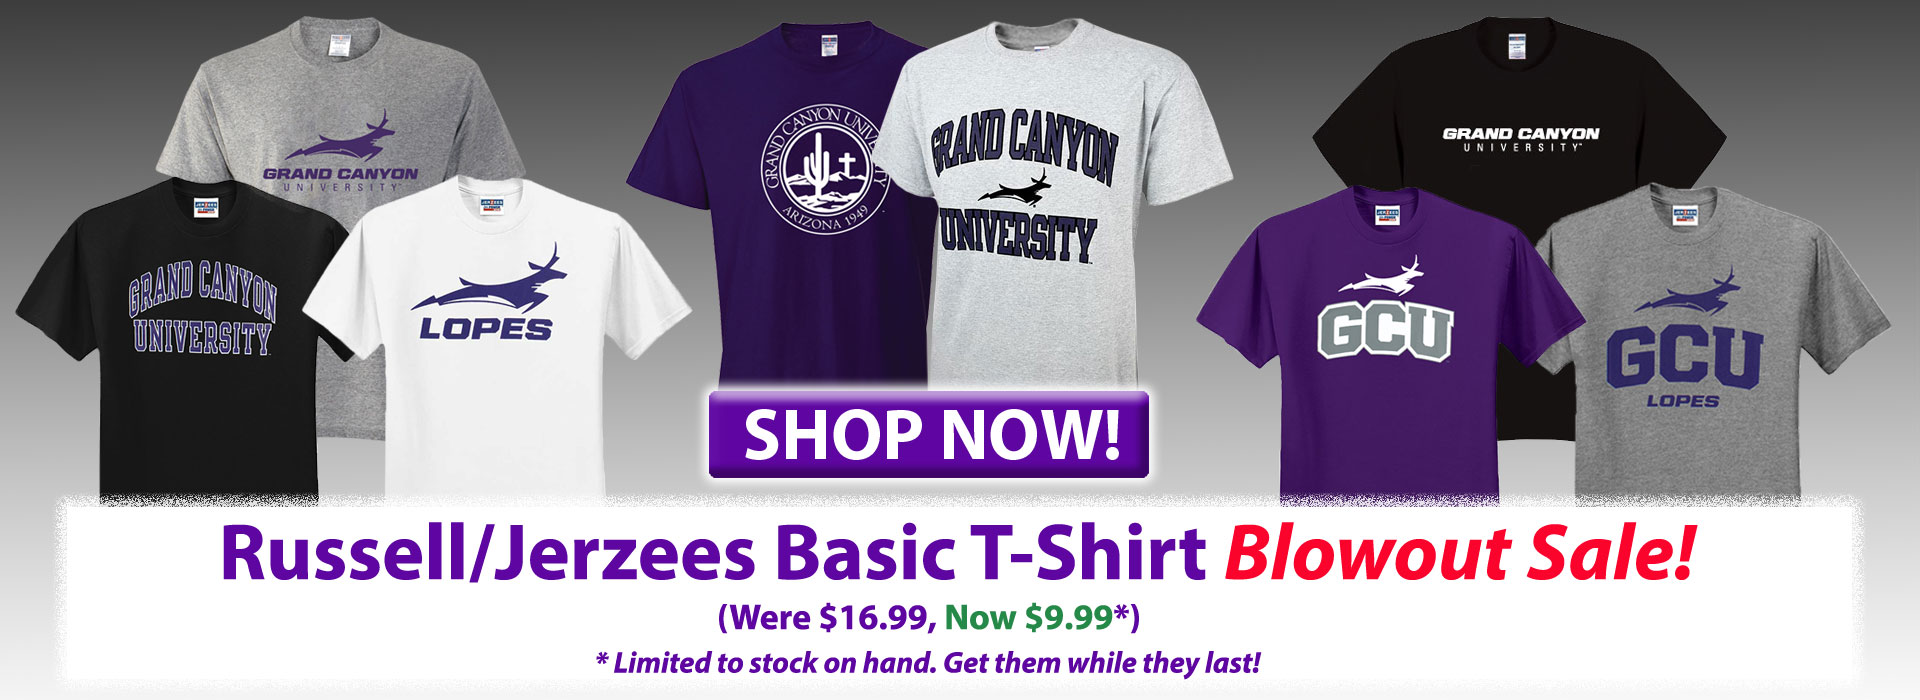 37c55271930b3 GCU Lopes Clothing, Gear & Gifts | Lope Shops